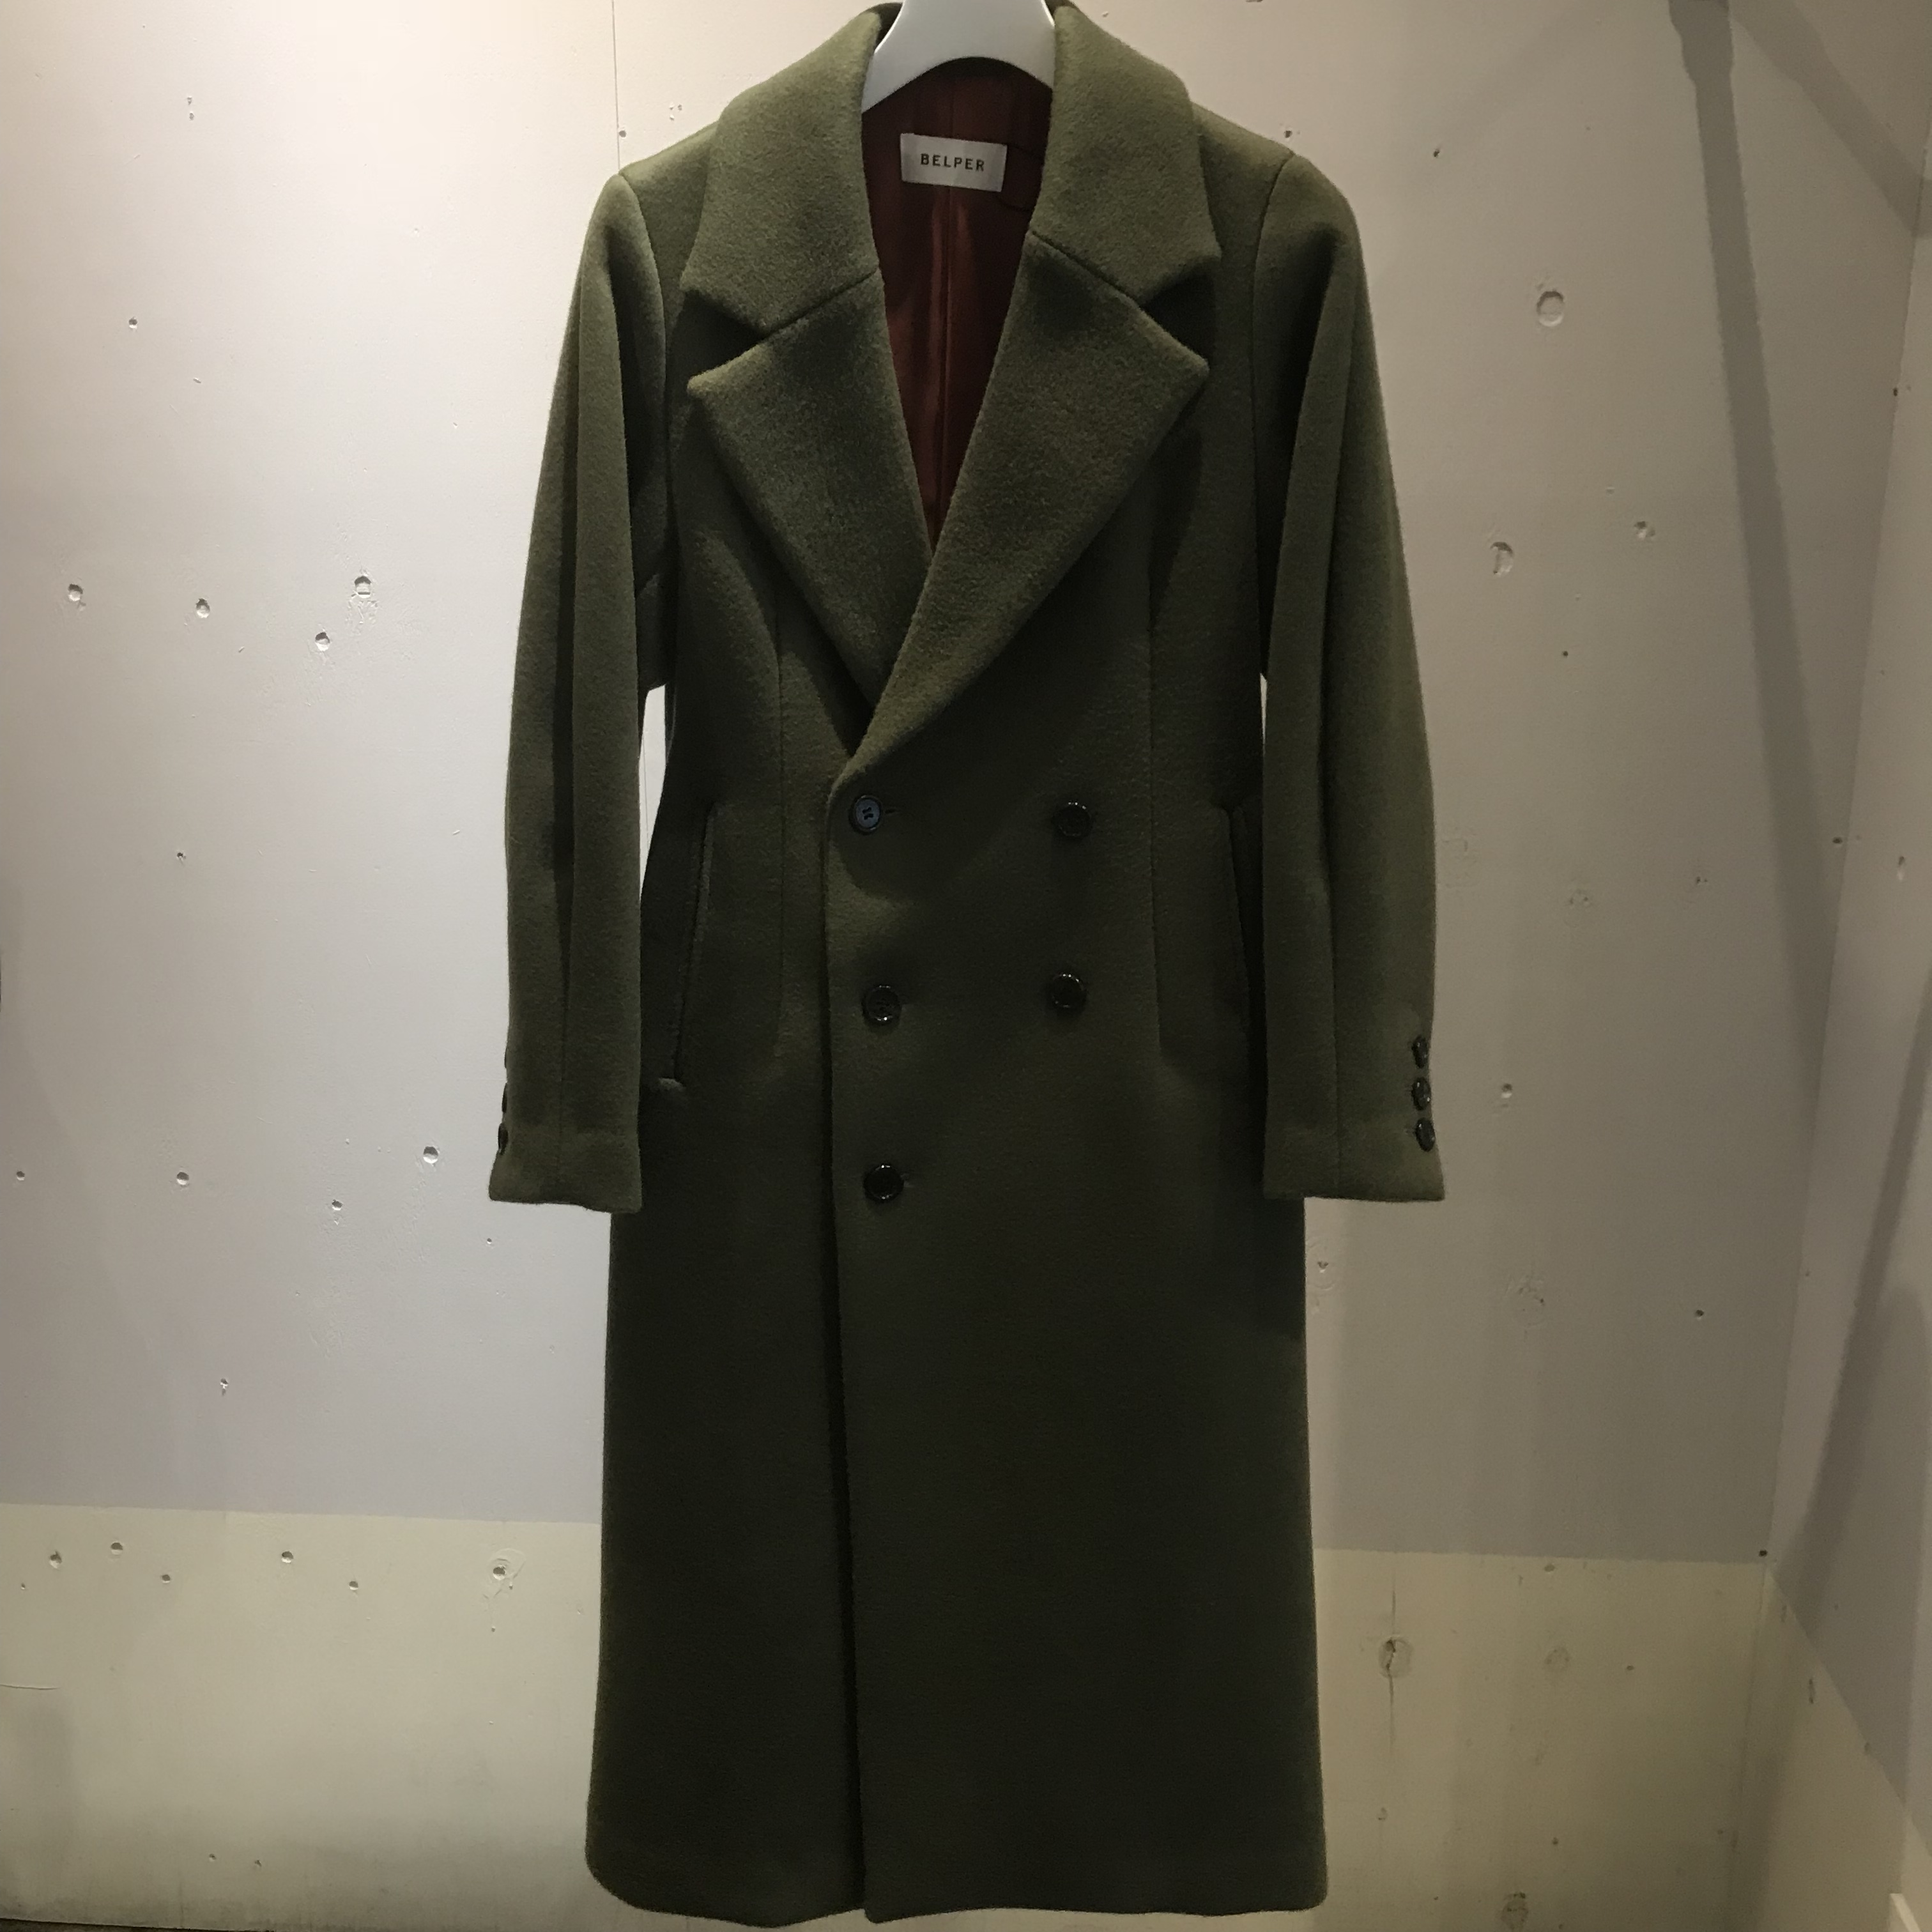 BELPER SHAPED WOOL COAT